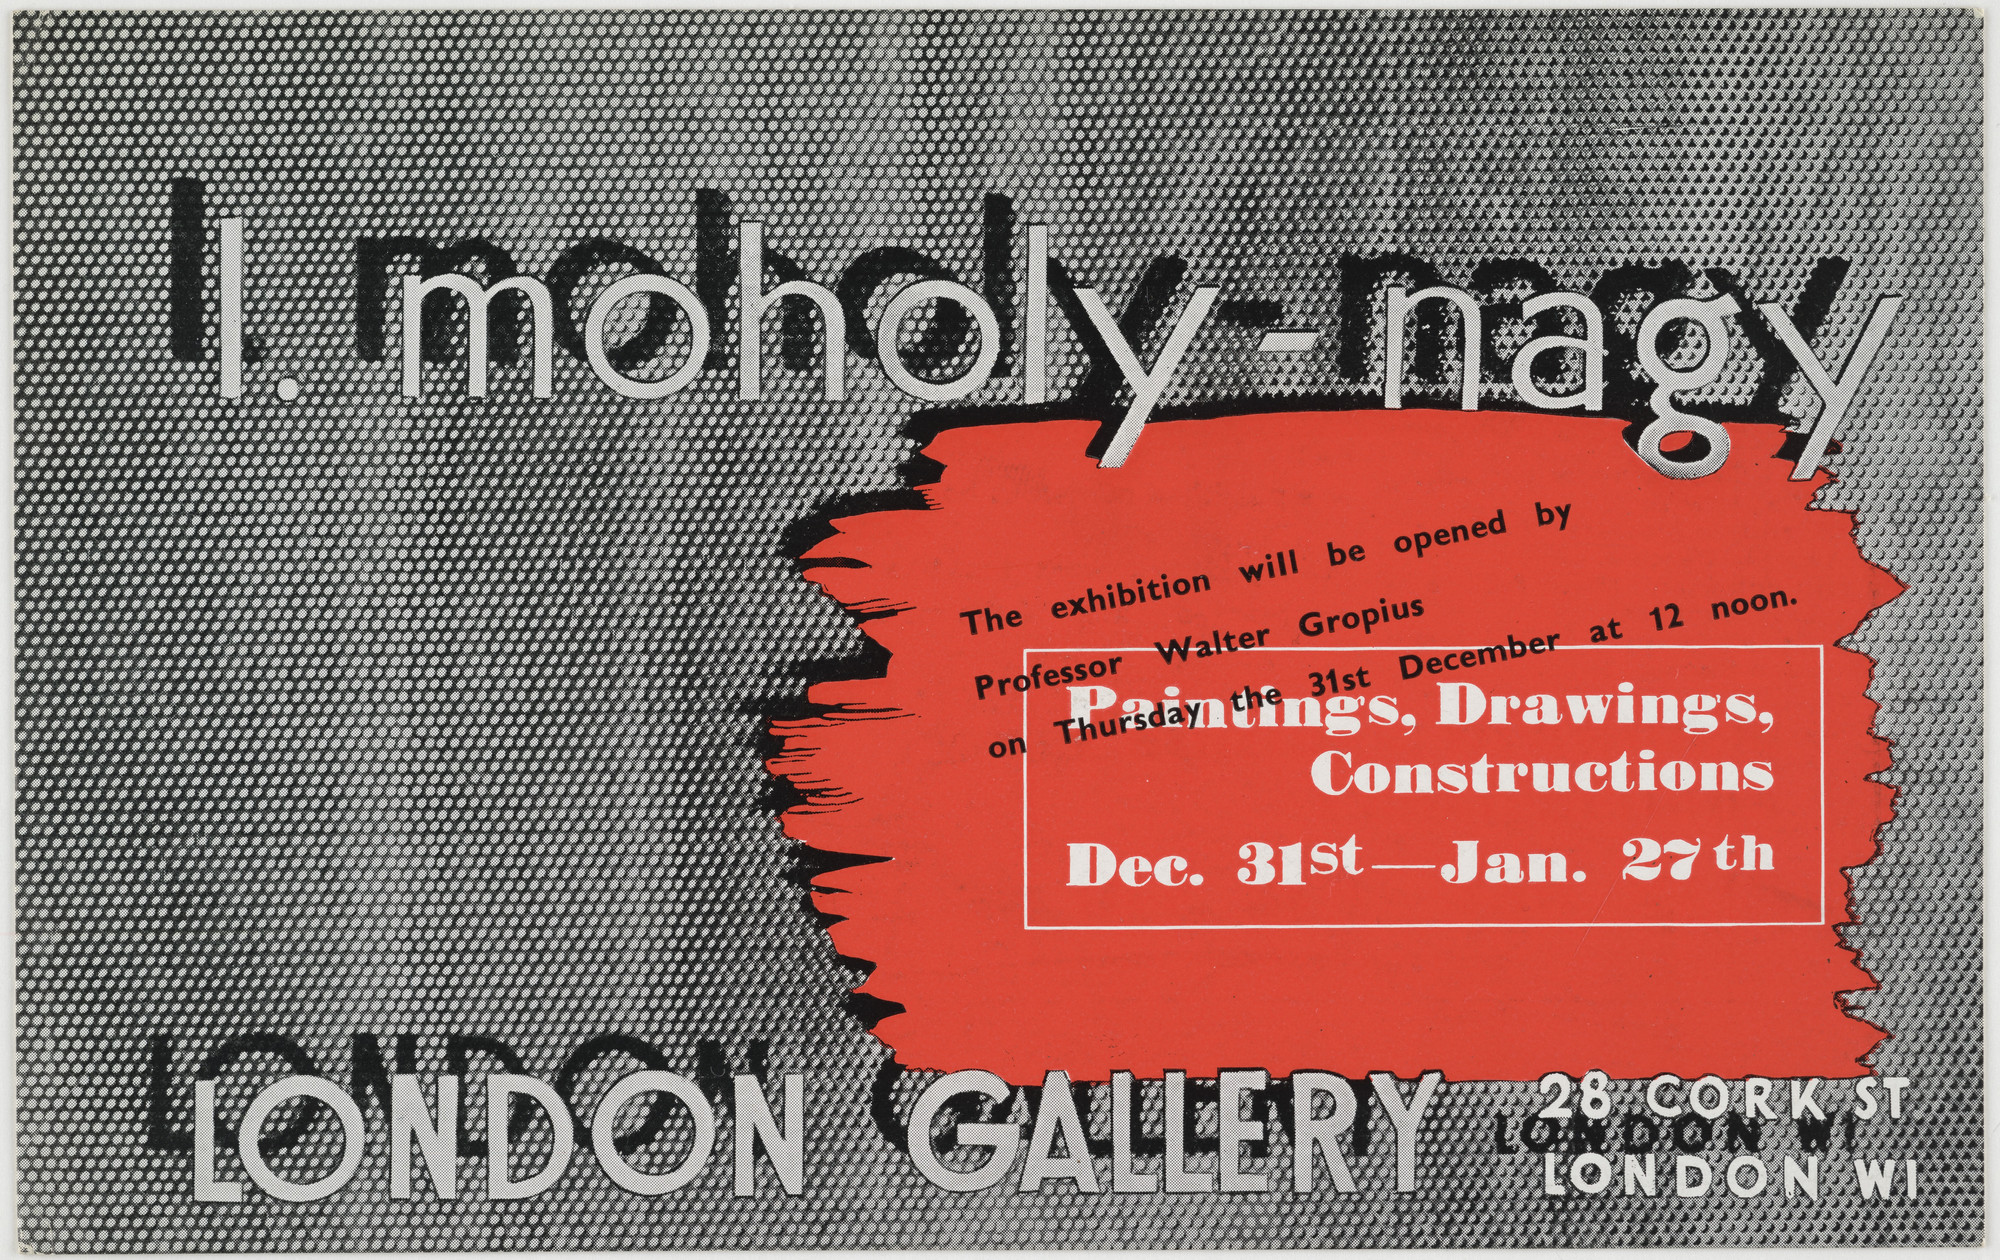 László Moholy-Nagy. L. Moholy-Nagy: Paintings, Drawings, Constructions Dec. Dec. 31st-Jan. 27th, London Gallery. 1930s